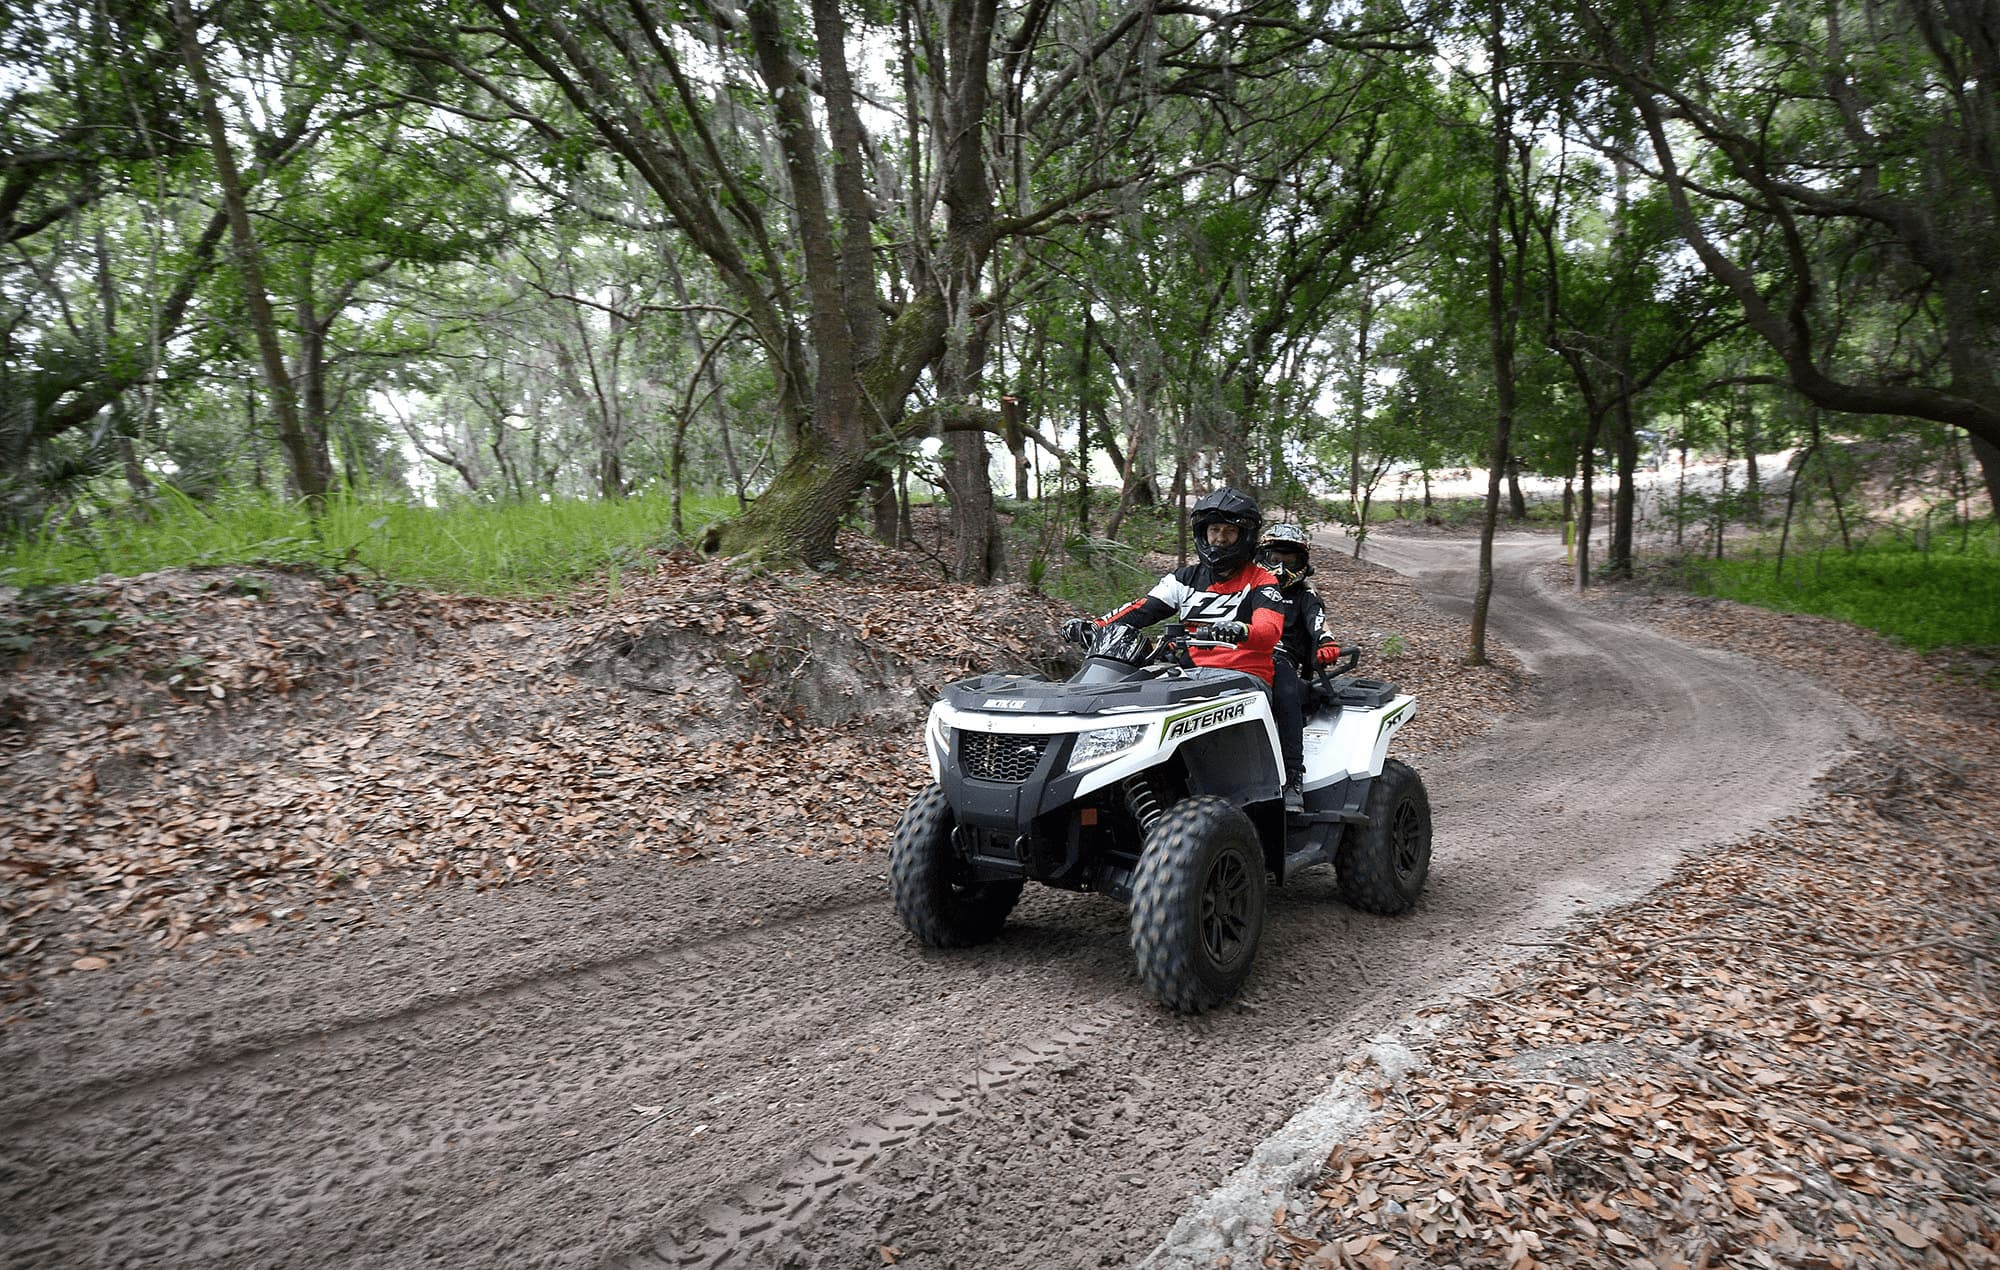 2 people on 4 wheeler riding on tree lined dirt trail at Bone Valley ATV Park in Mulberry, FL